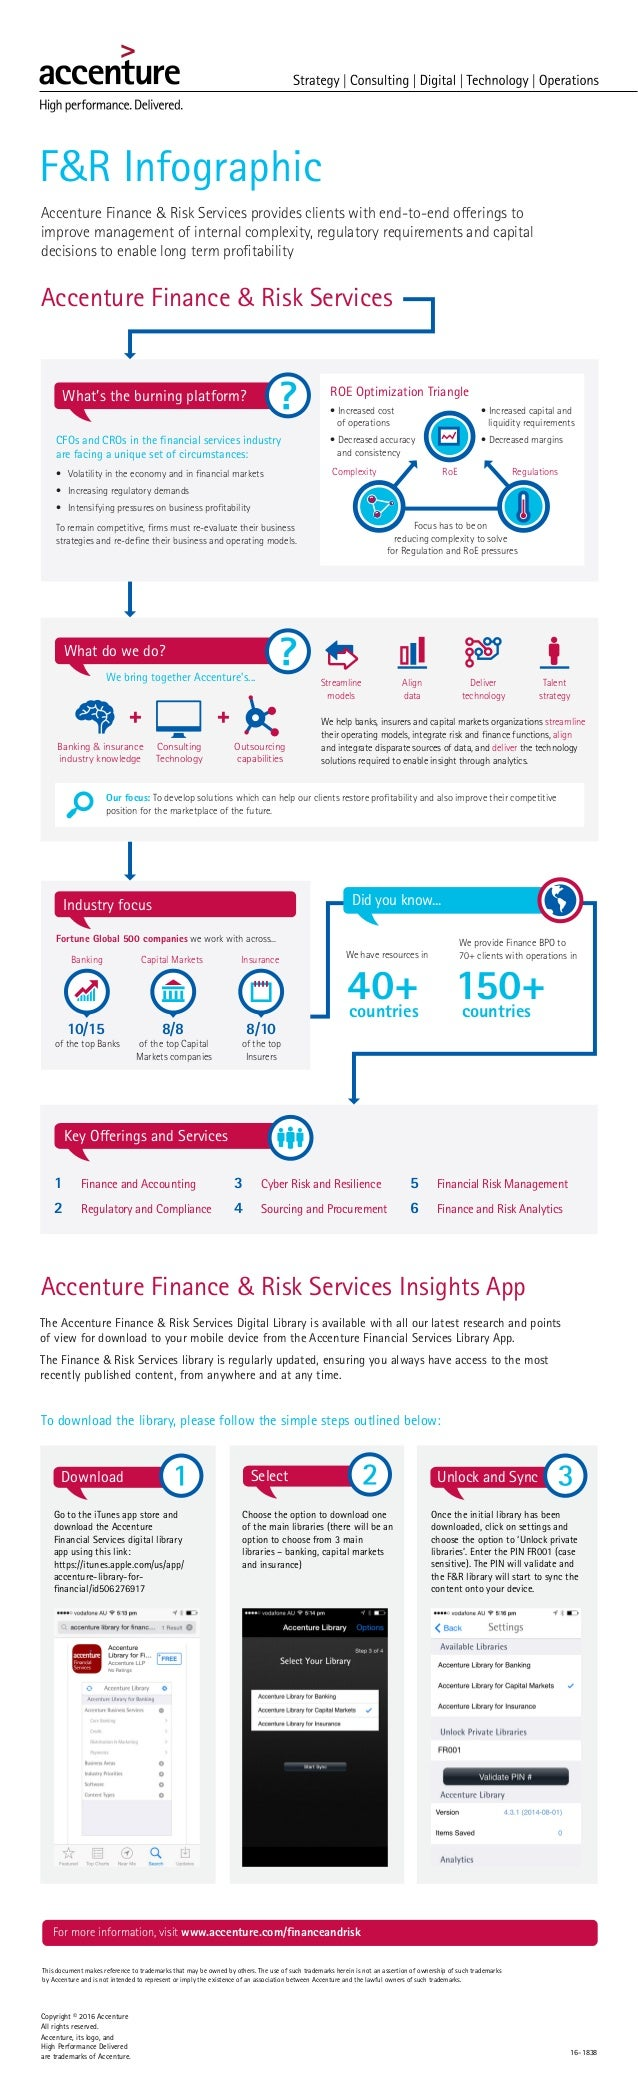 Accenture Finance & Risk Services provides clients with end-to-end offerings to improve management of internal complexity,...